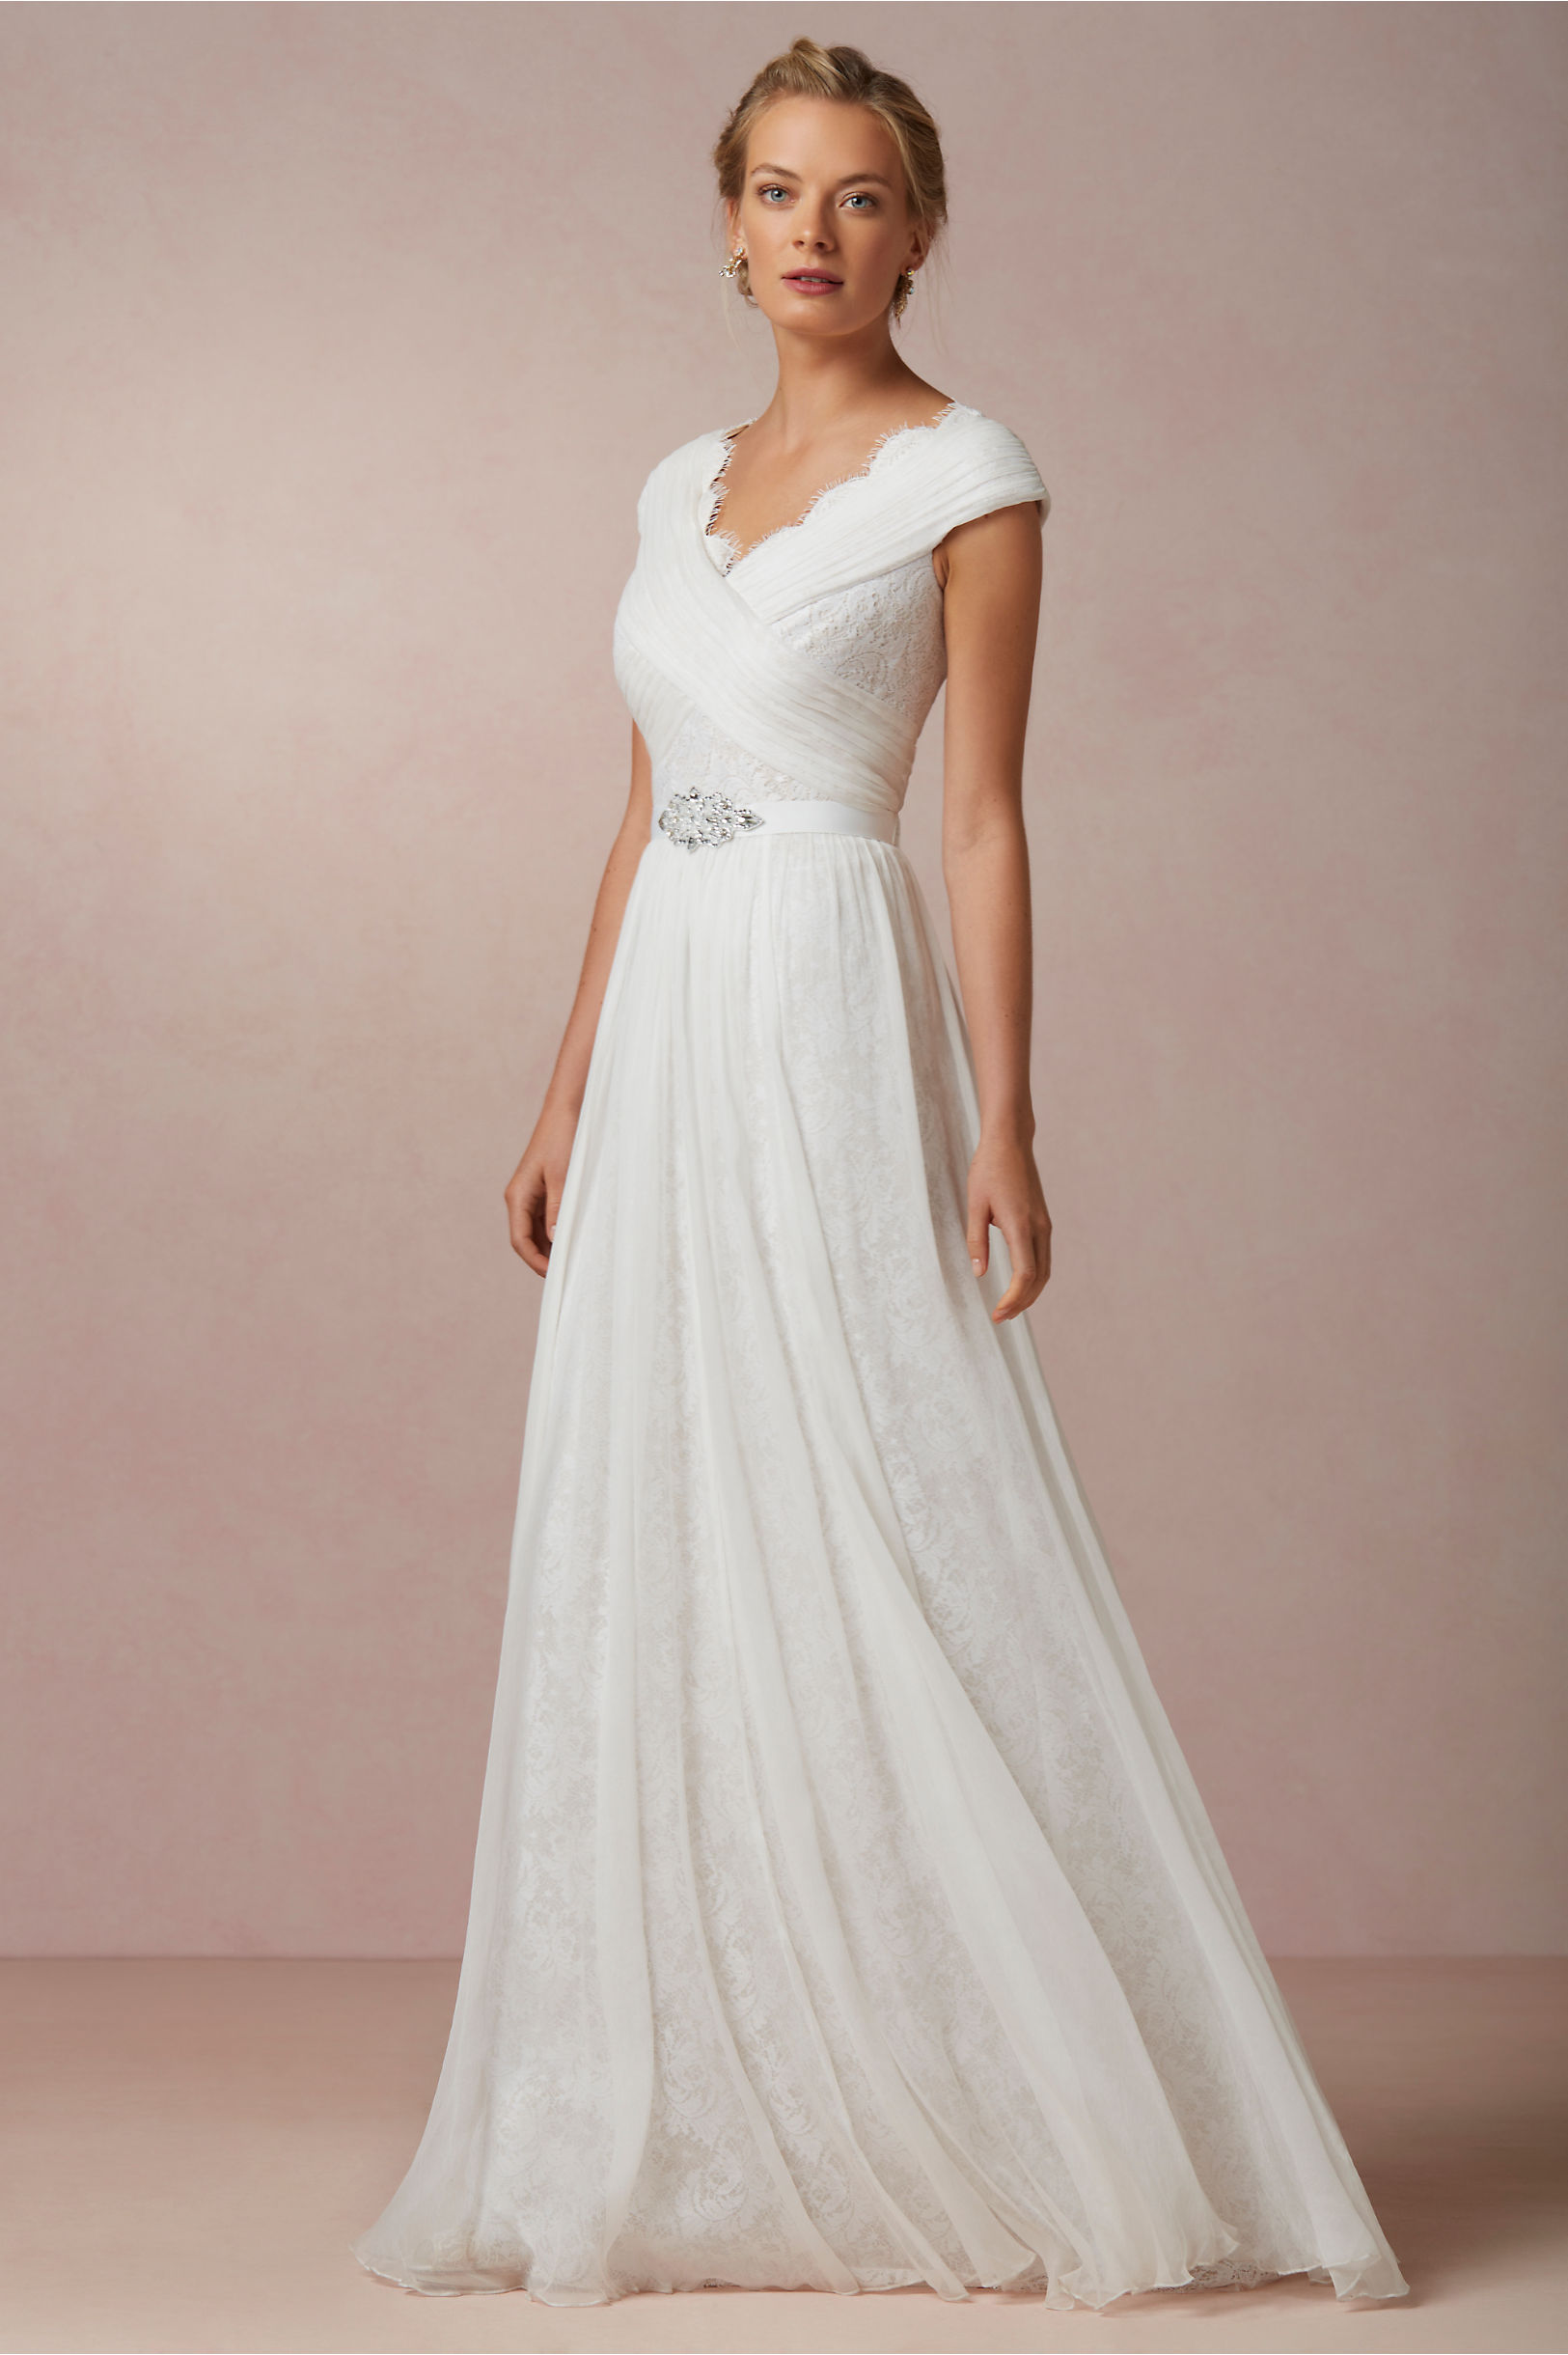 Friday five for five wedding dresses under 500 vol 25 for Modest wedding dresses under 500